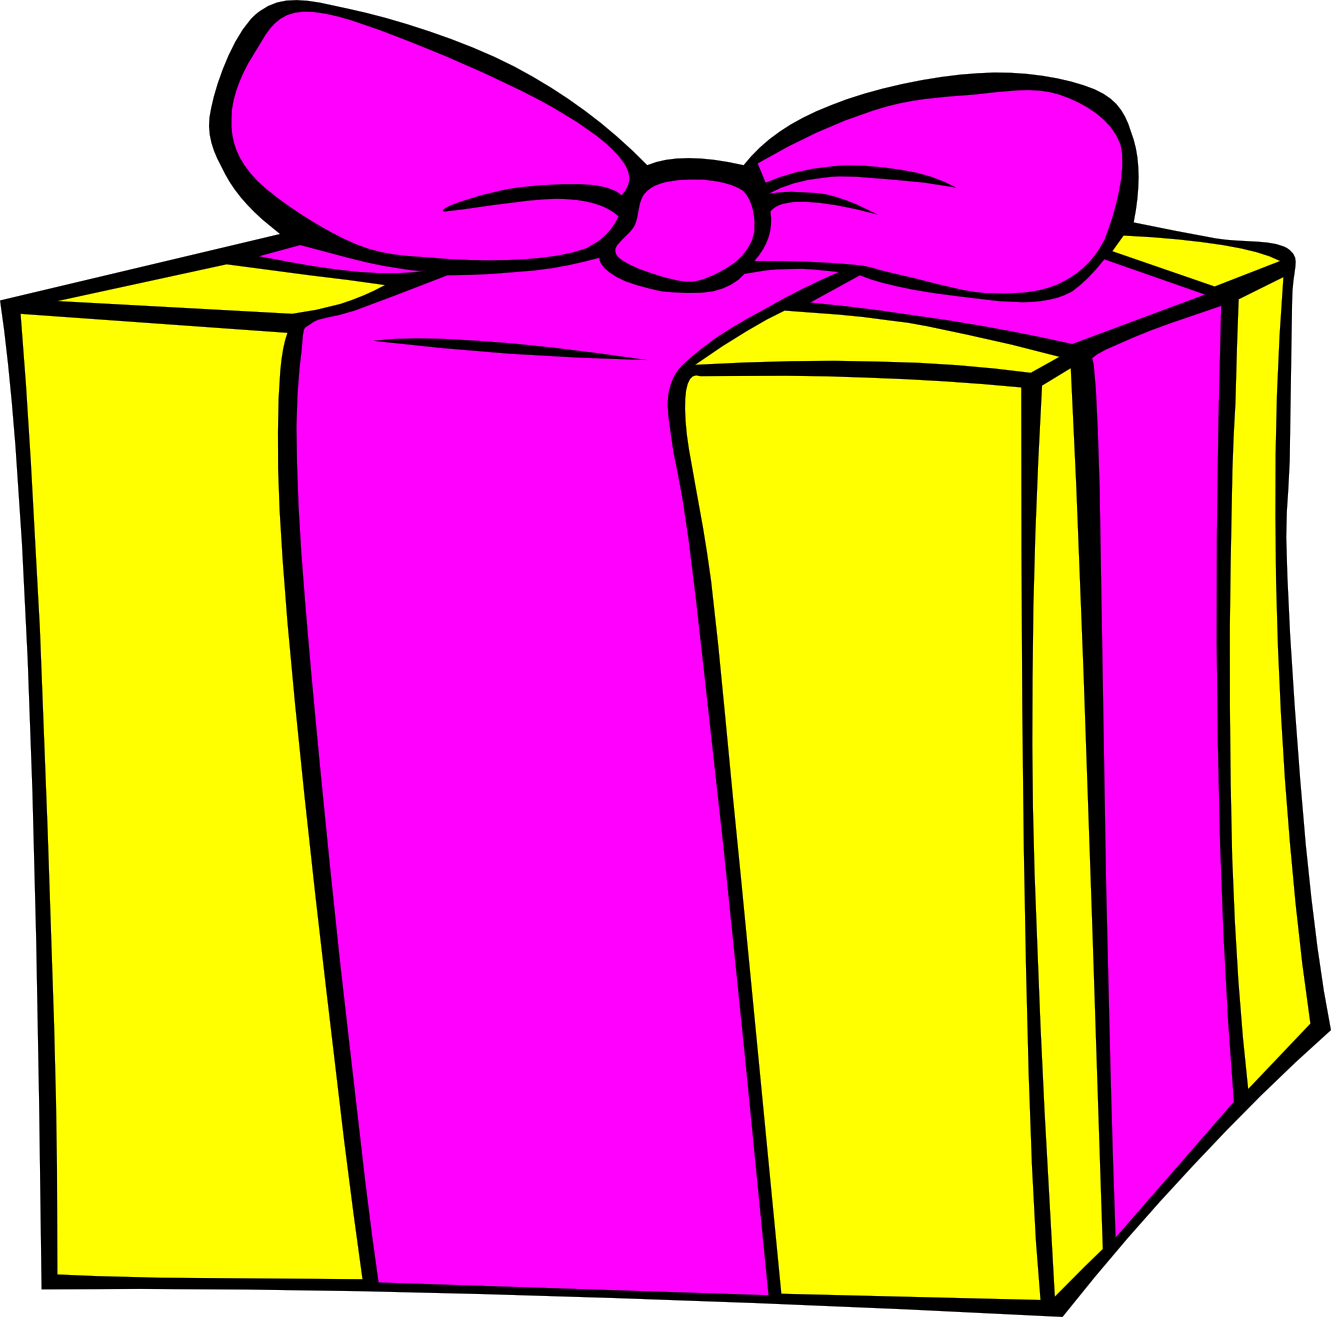 Free gift images download. Gifts clipart birthday present png royalty free